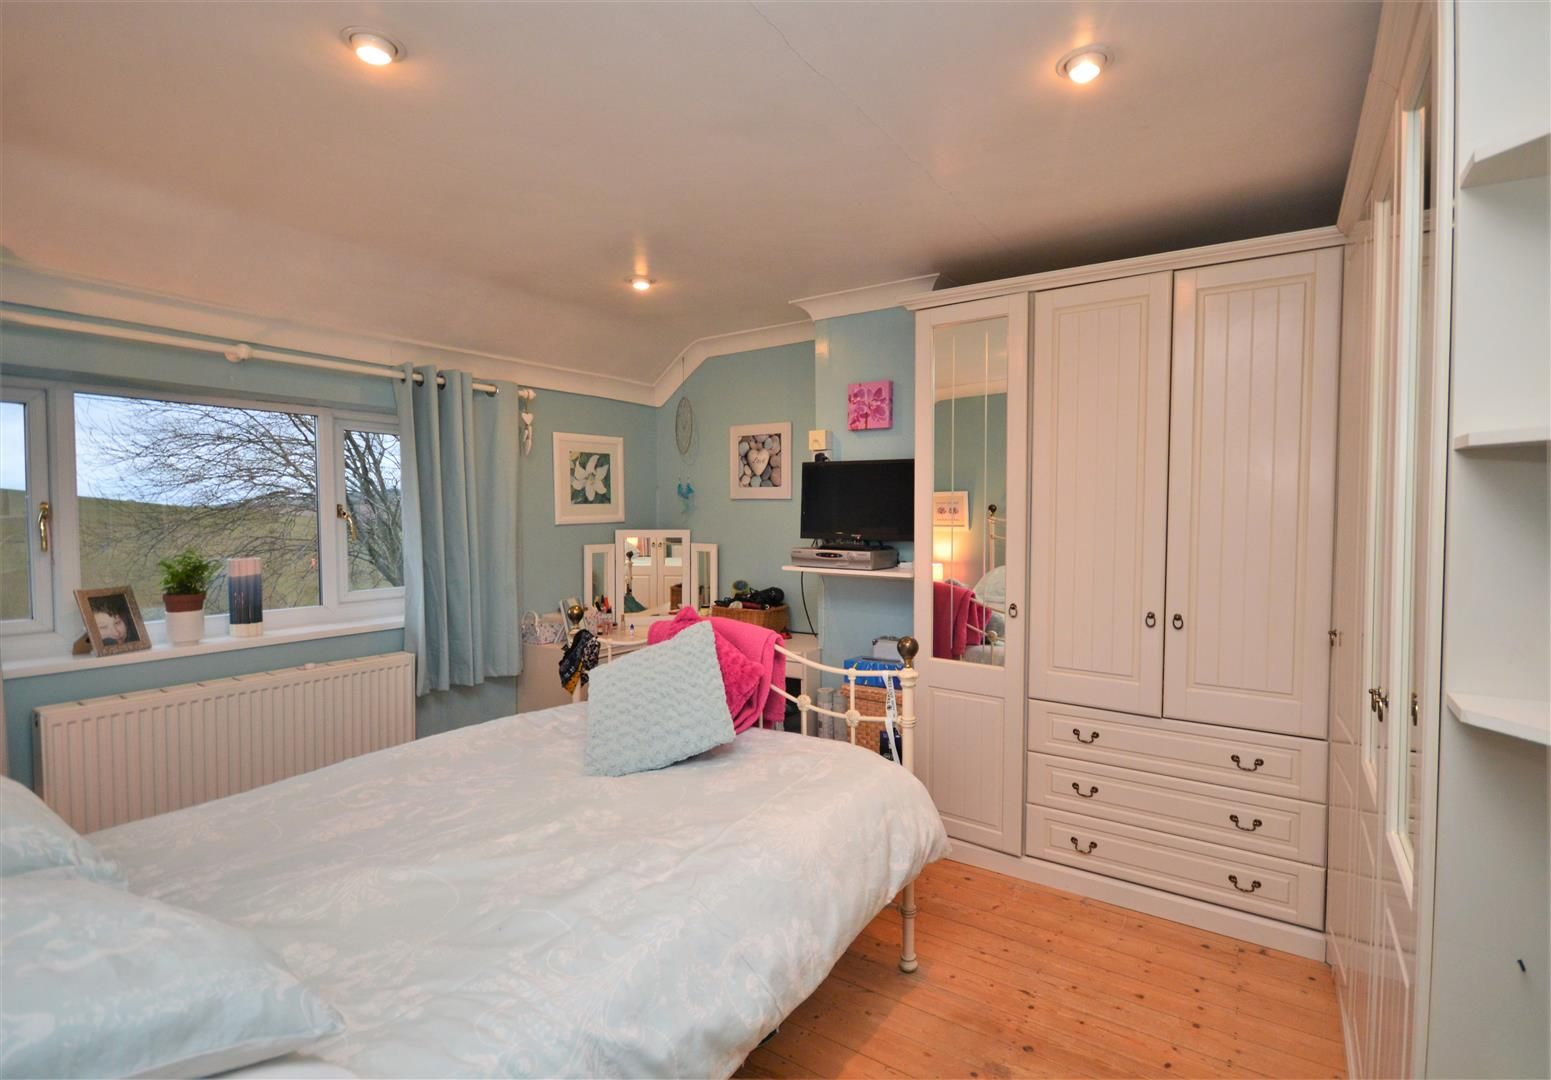 3 bed semi-detached for sale in Much Birch 7